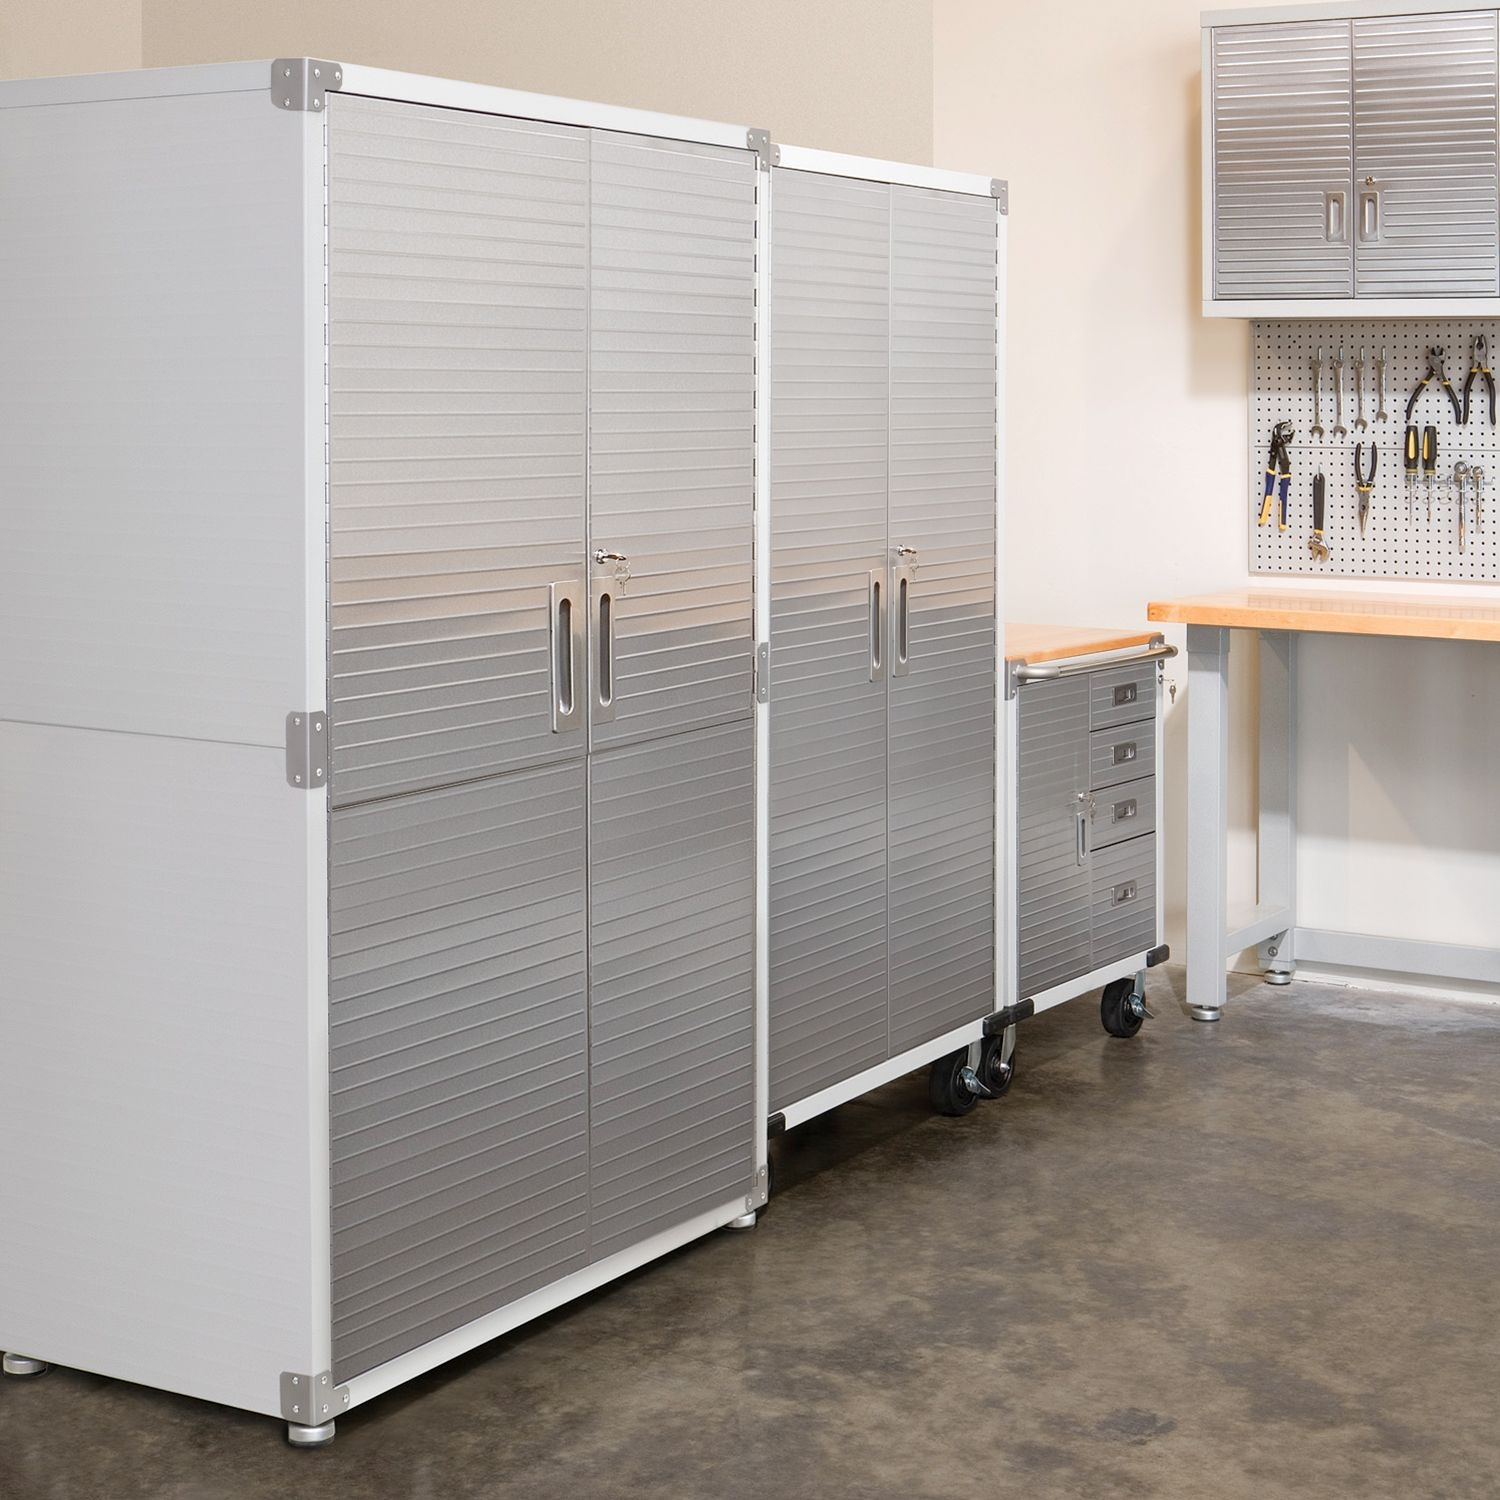 Permalink to Seville Ultra Hd Storage Cabinets